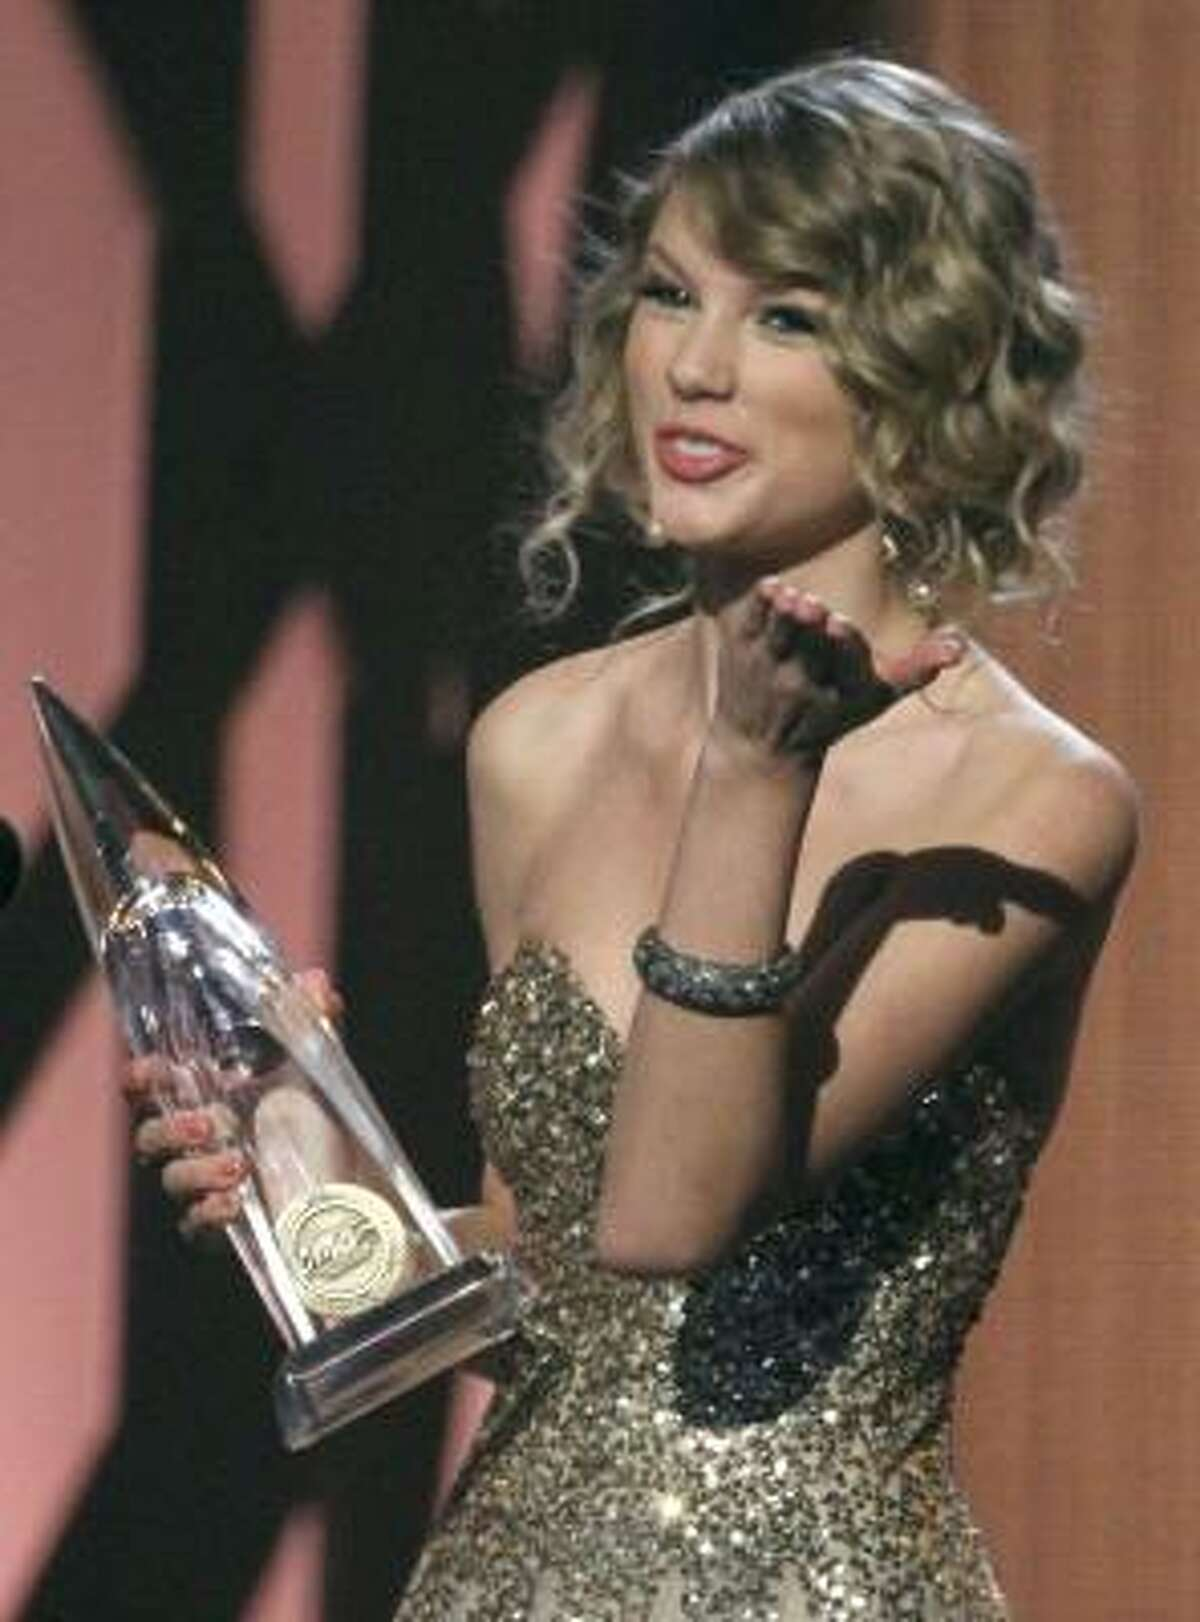 Taylor Swift accepts the award for Female Vocalist of the Year.